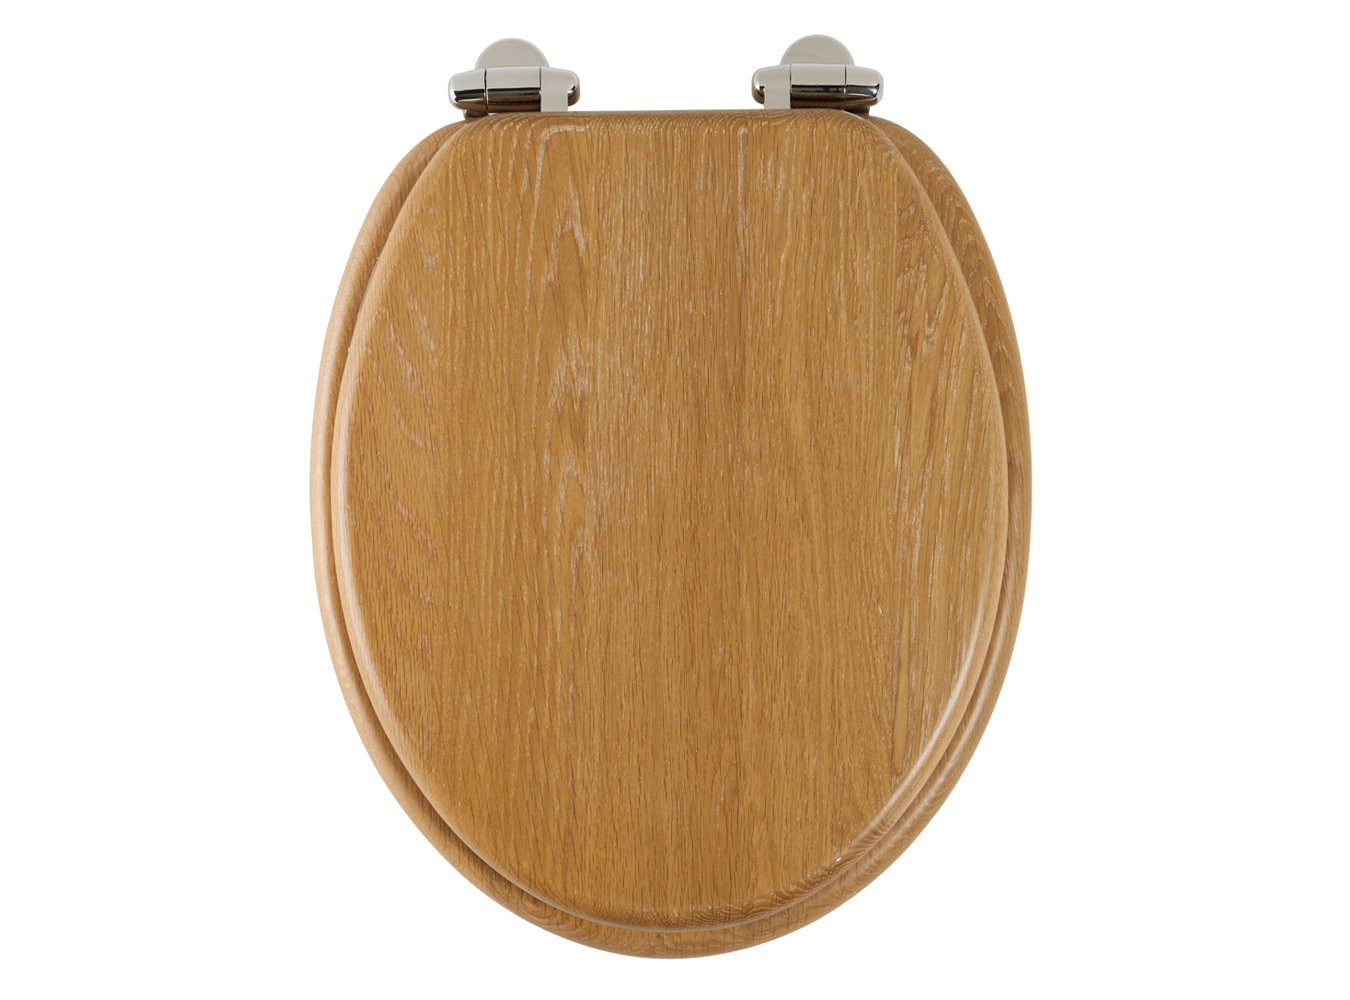 Roper Rhodes Traditional Soft Closing Limed Oak Toilet Seat